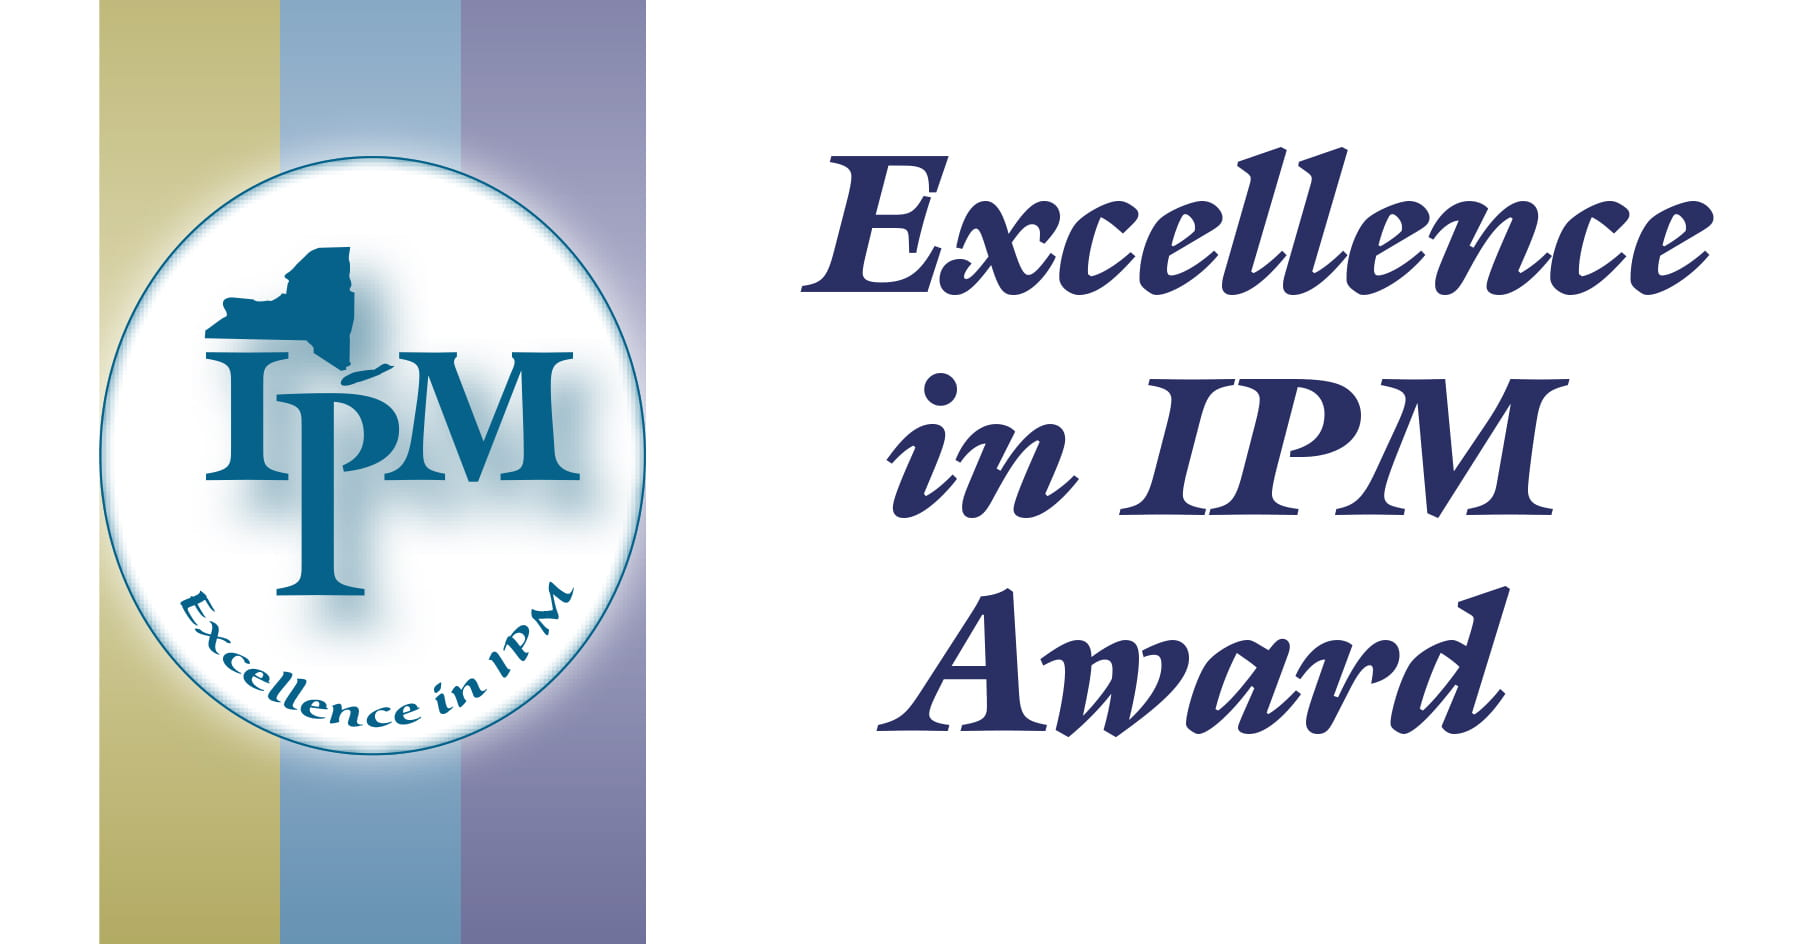 This graphic is a replica image of the Excellence in IPM Award plaque given awardees.